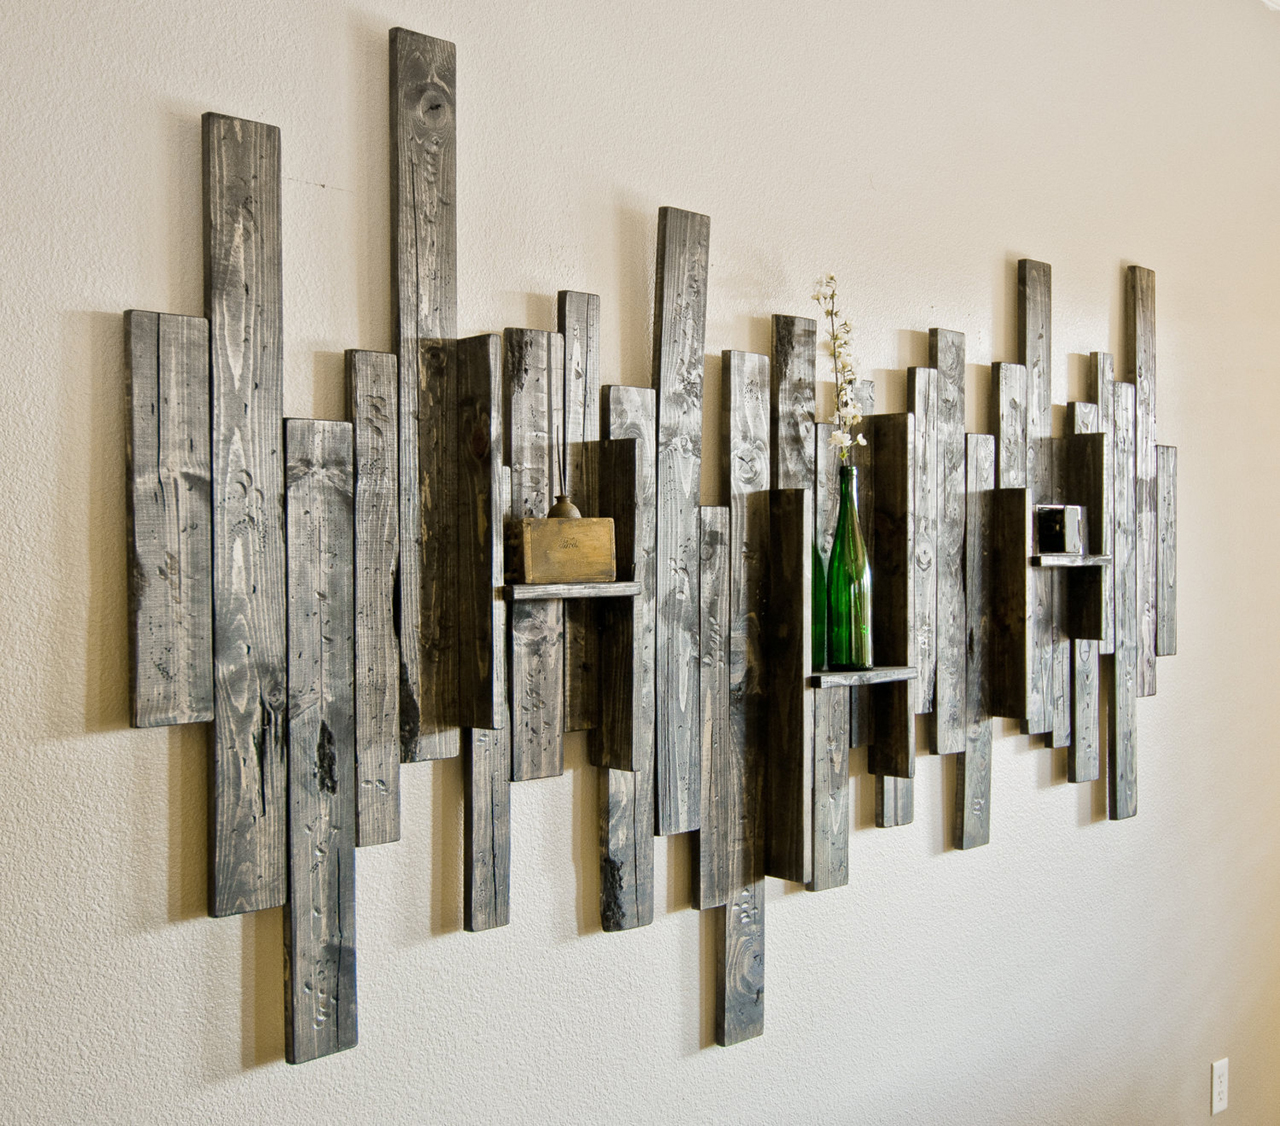 Abstract Wall Art and Shelf from Rustic Barn Wood : wood wall decorations ideas - www.pureclipart.com